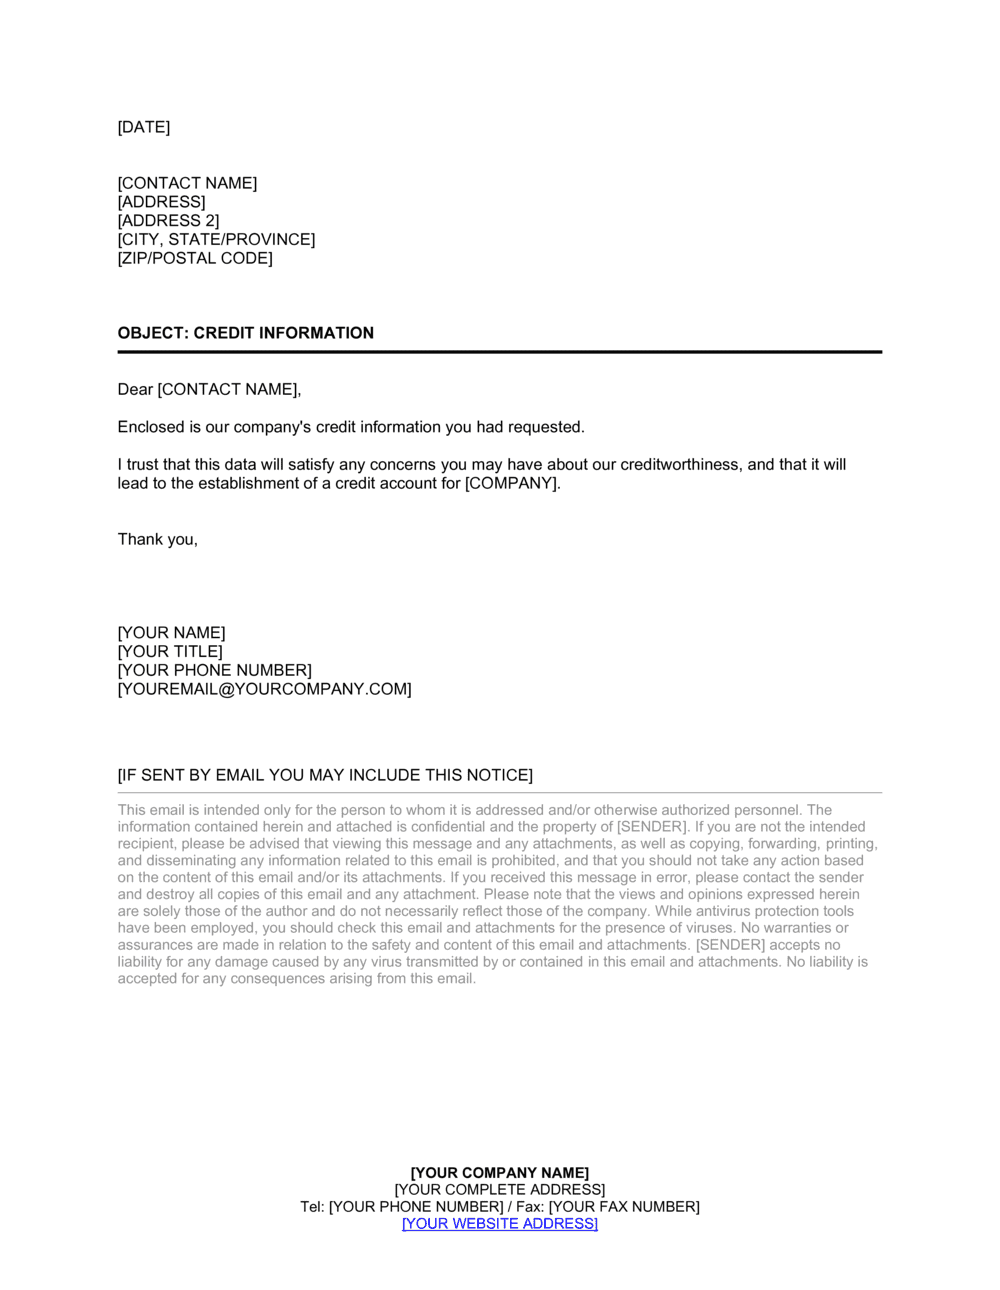 Business-in-a-Box's Credit Information Cover Letter Template